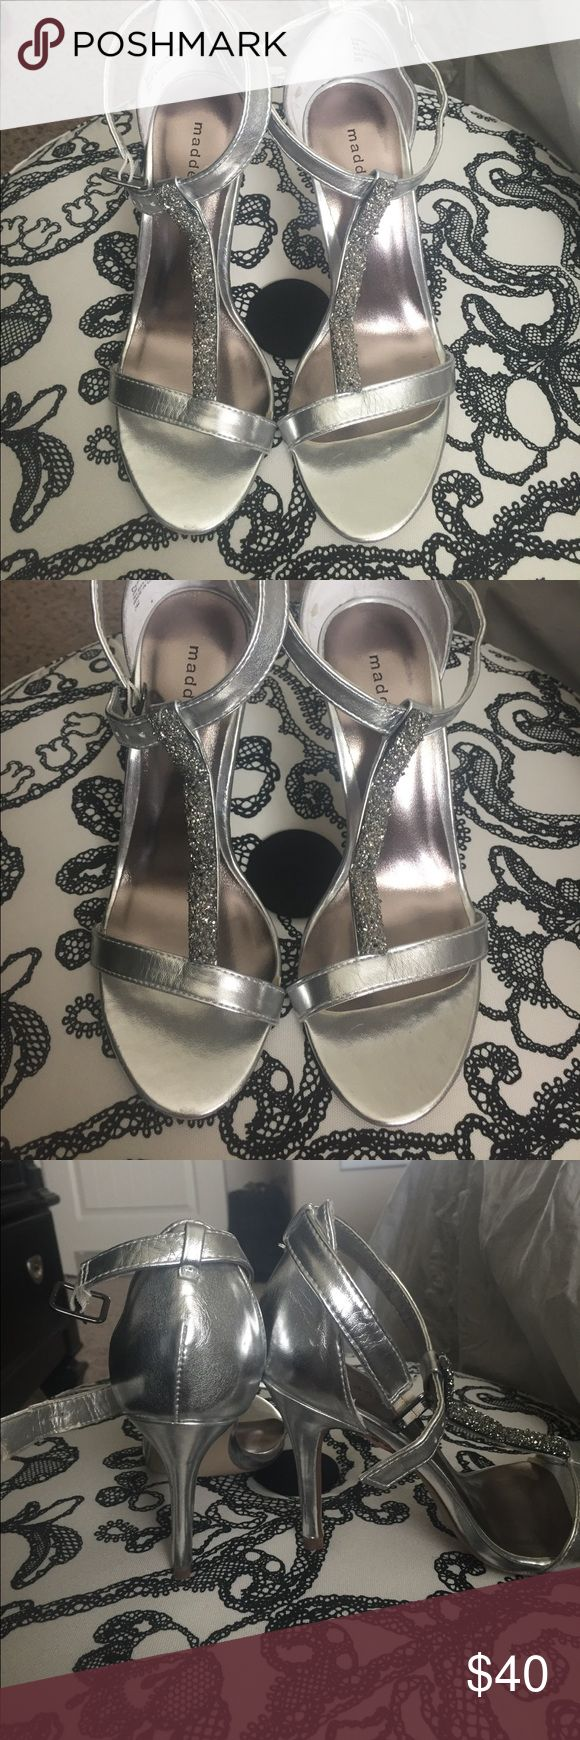 STEEVE MADDEN HIGH HEELS Here heels are perfect for homecoming and prom!!! Super comfy to walk in and go with everything! Madden Girl Shoes Heels